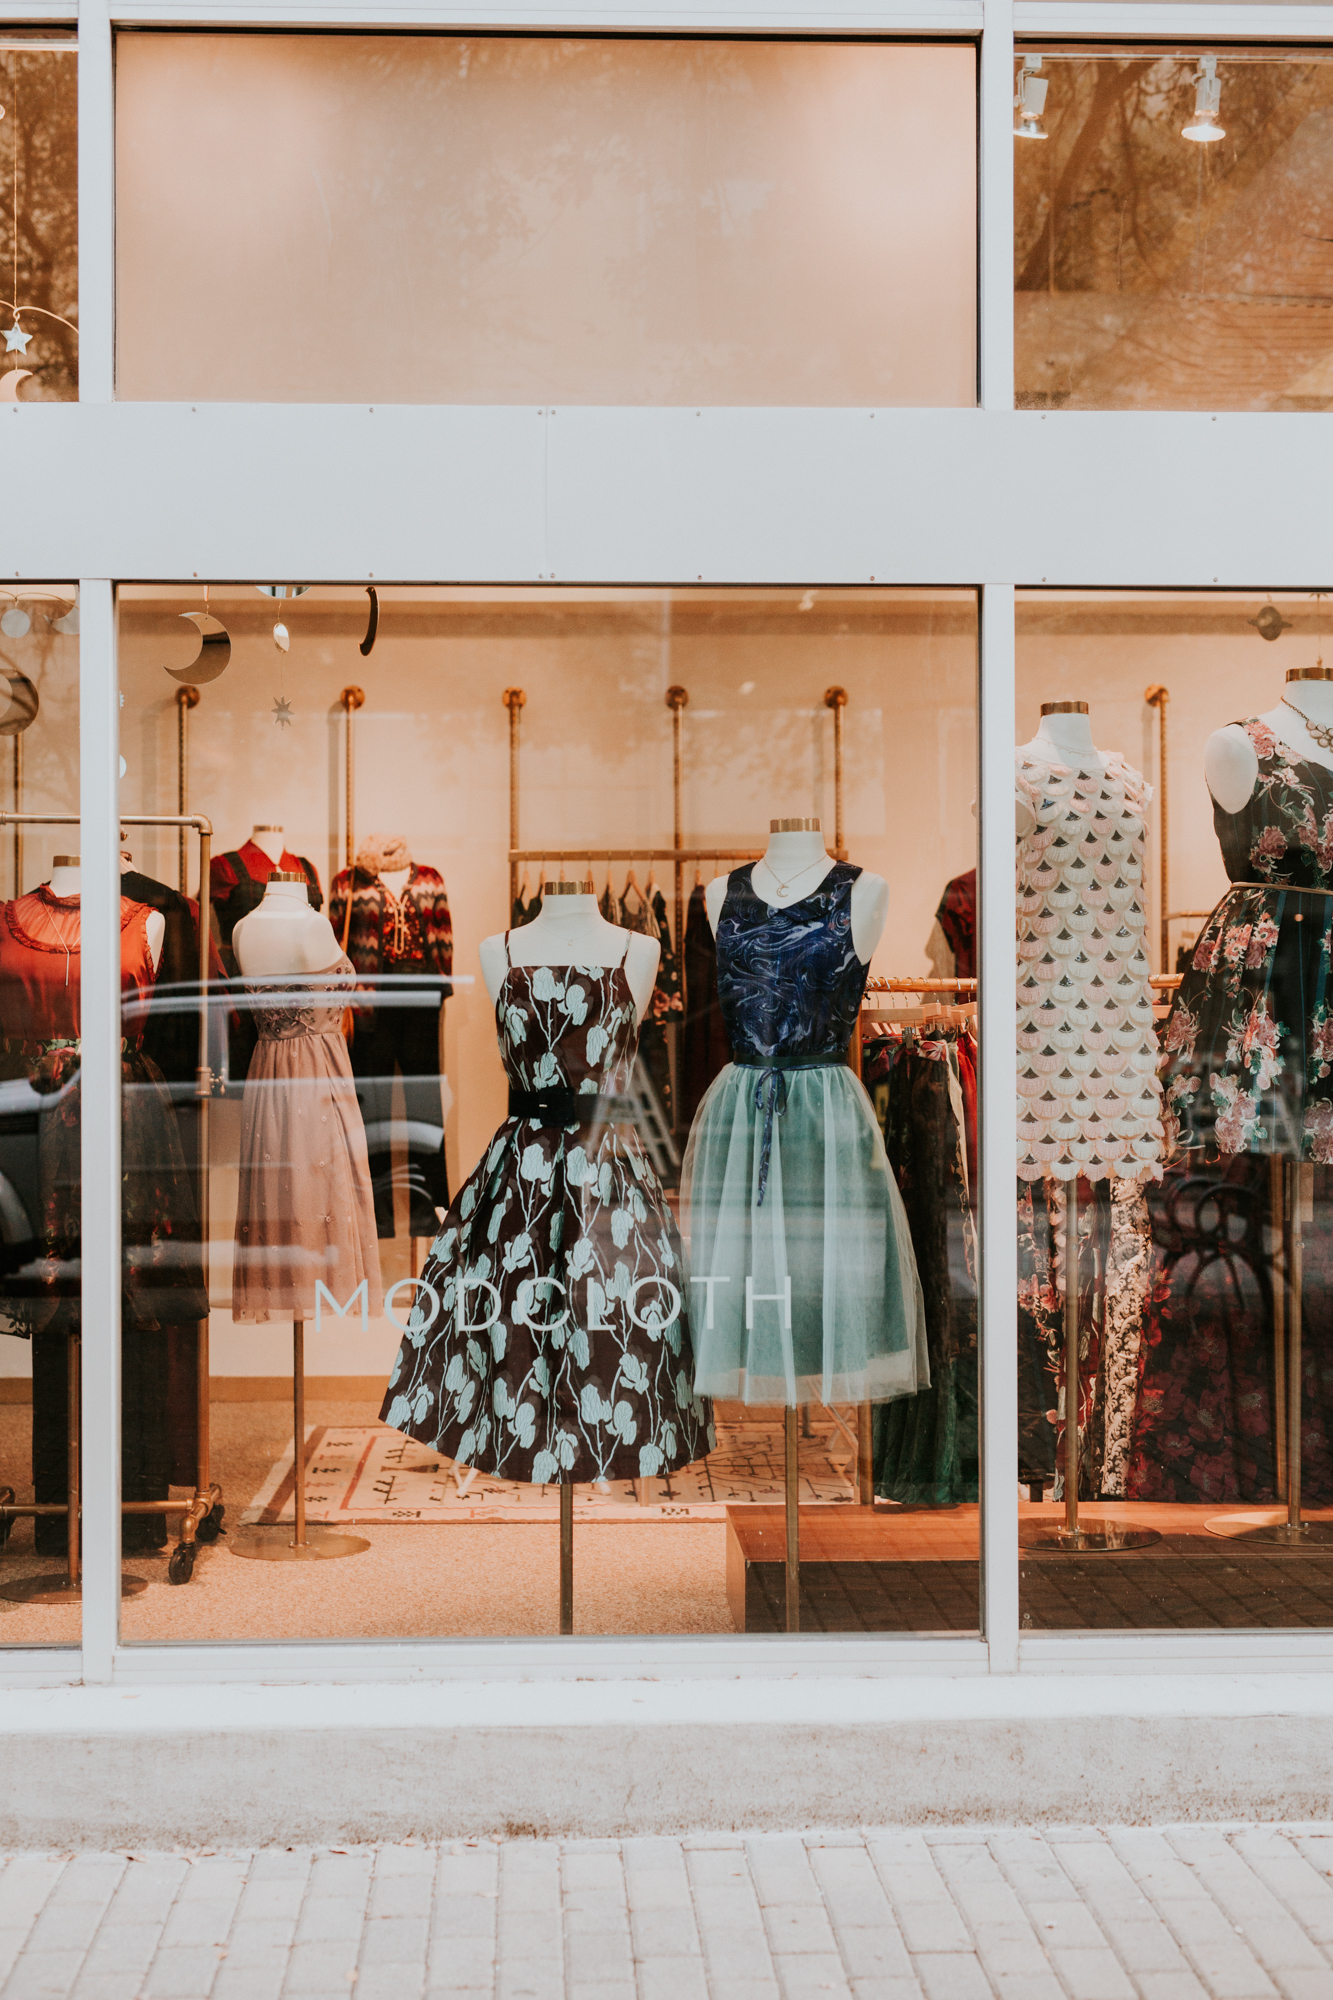 Walmart-owned ModCloth is opening stores across the country. Unlike at a traditional retailer, the store will allow shoppers to try on a full range of sizes, which they can then order online.